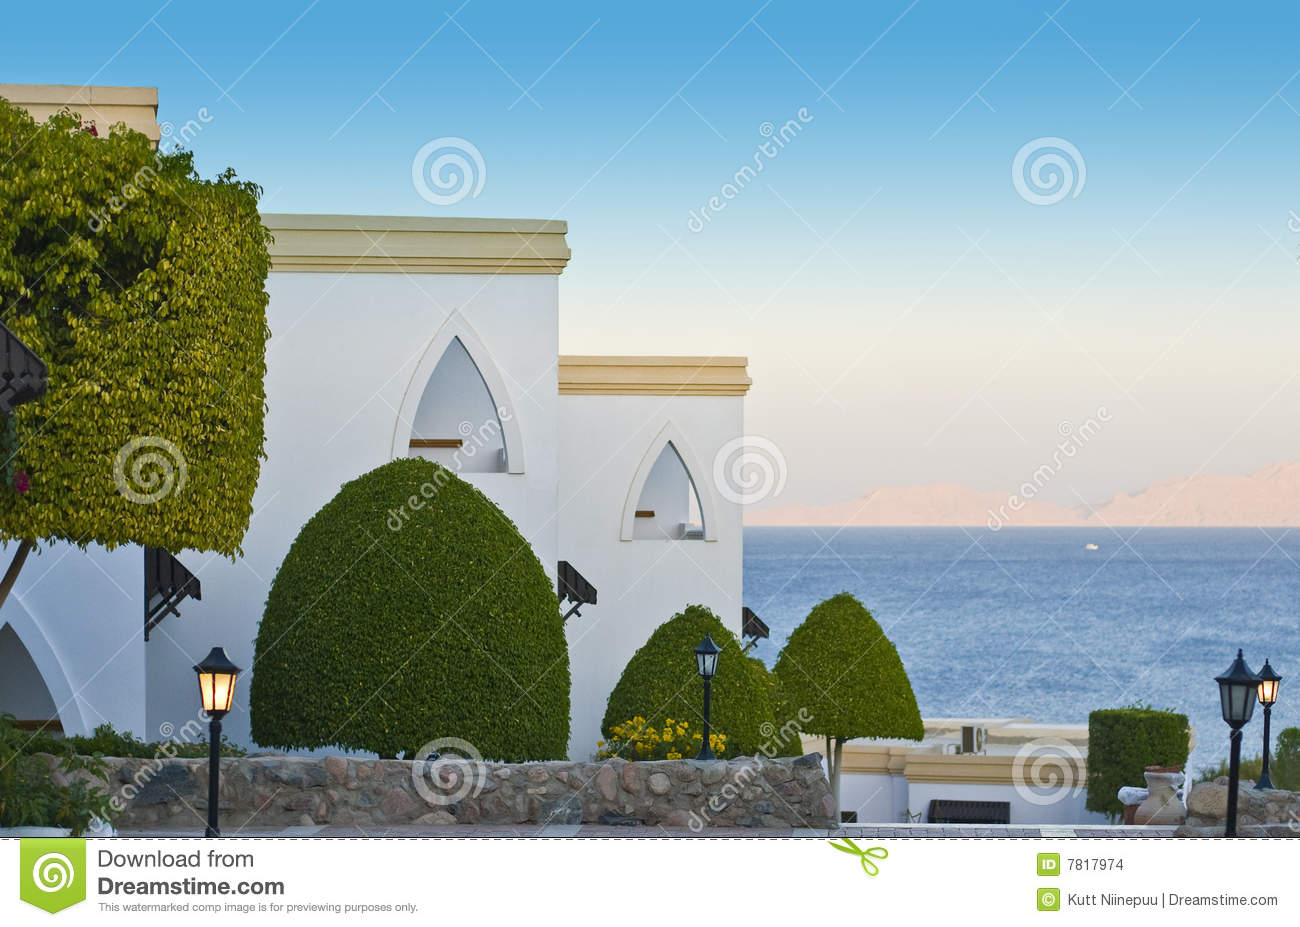 Luxurious resort hotel by sea